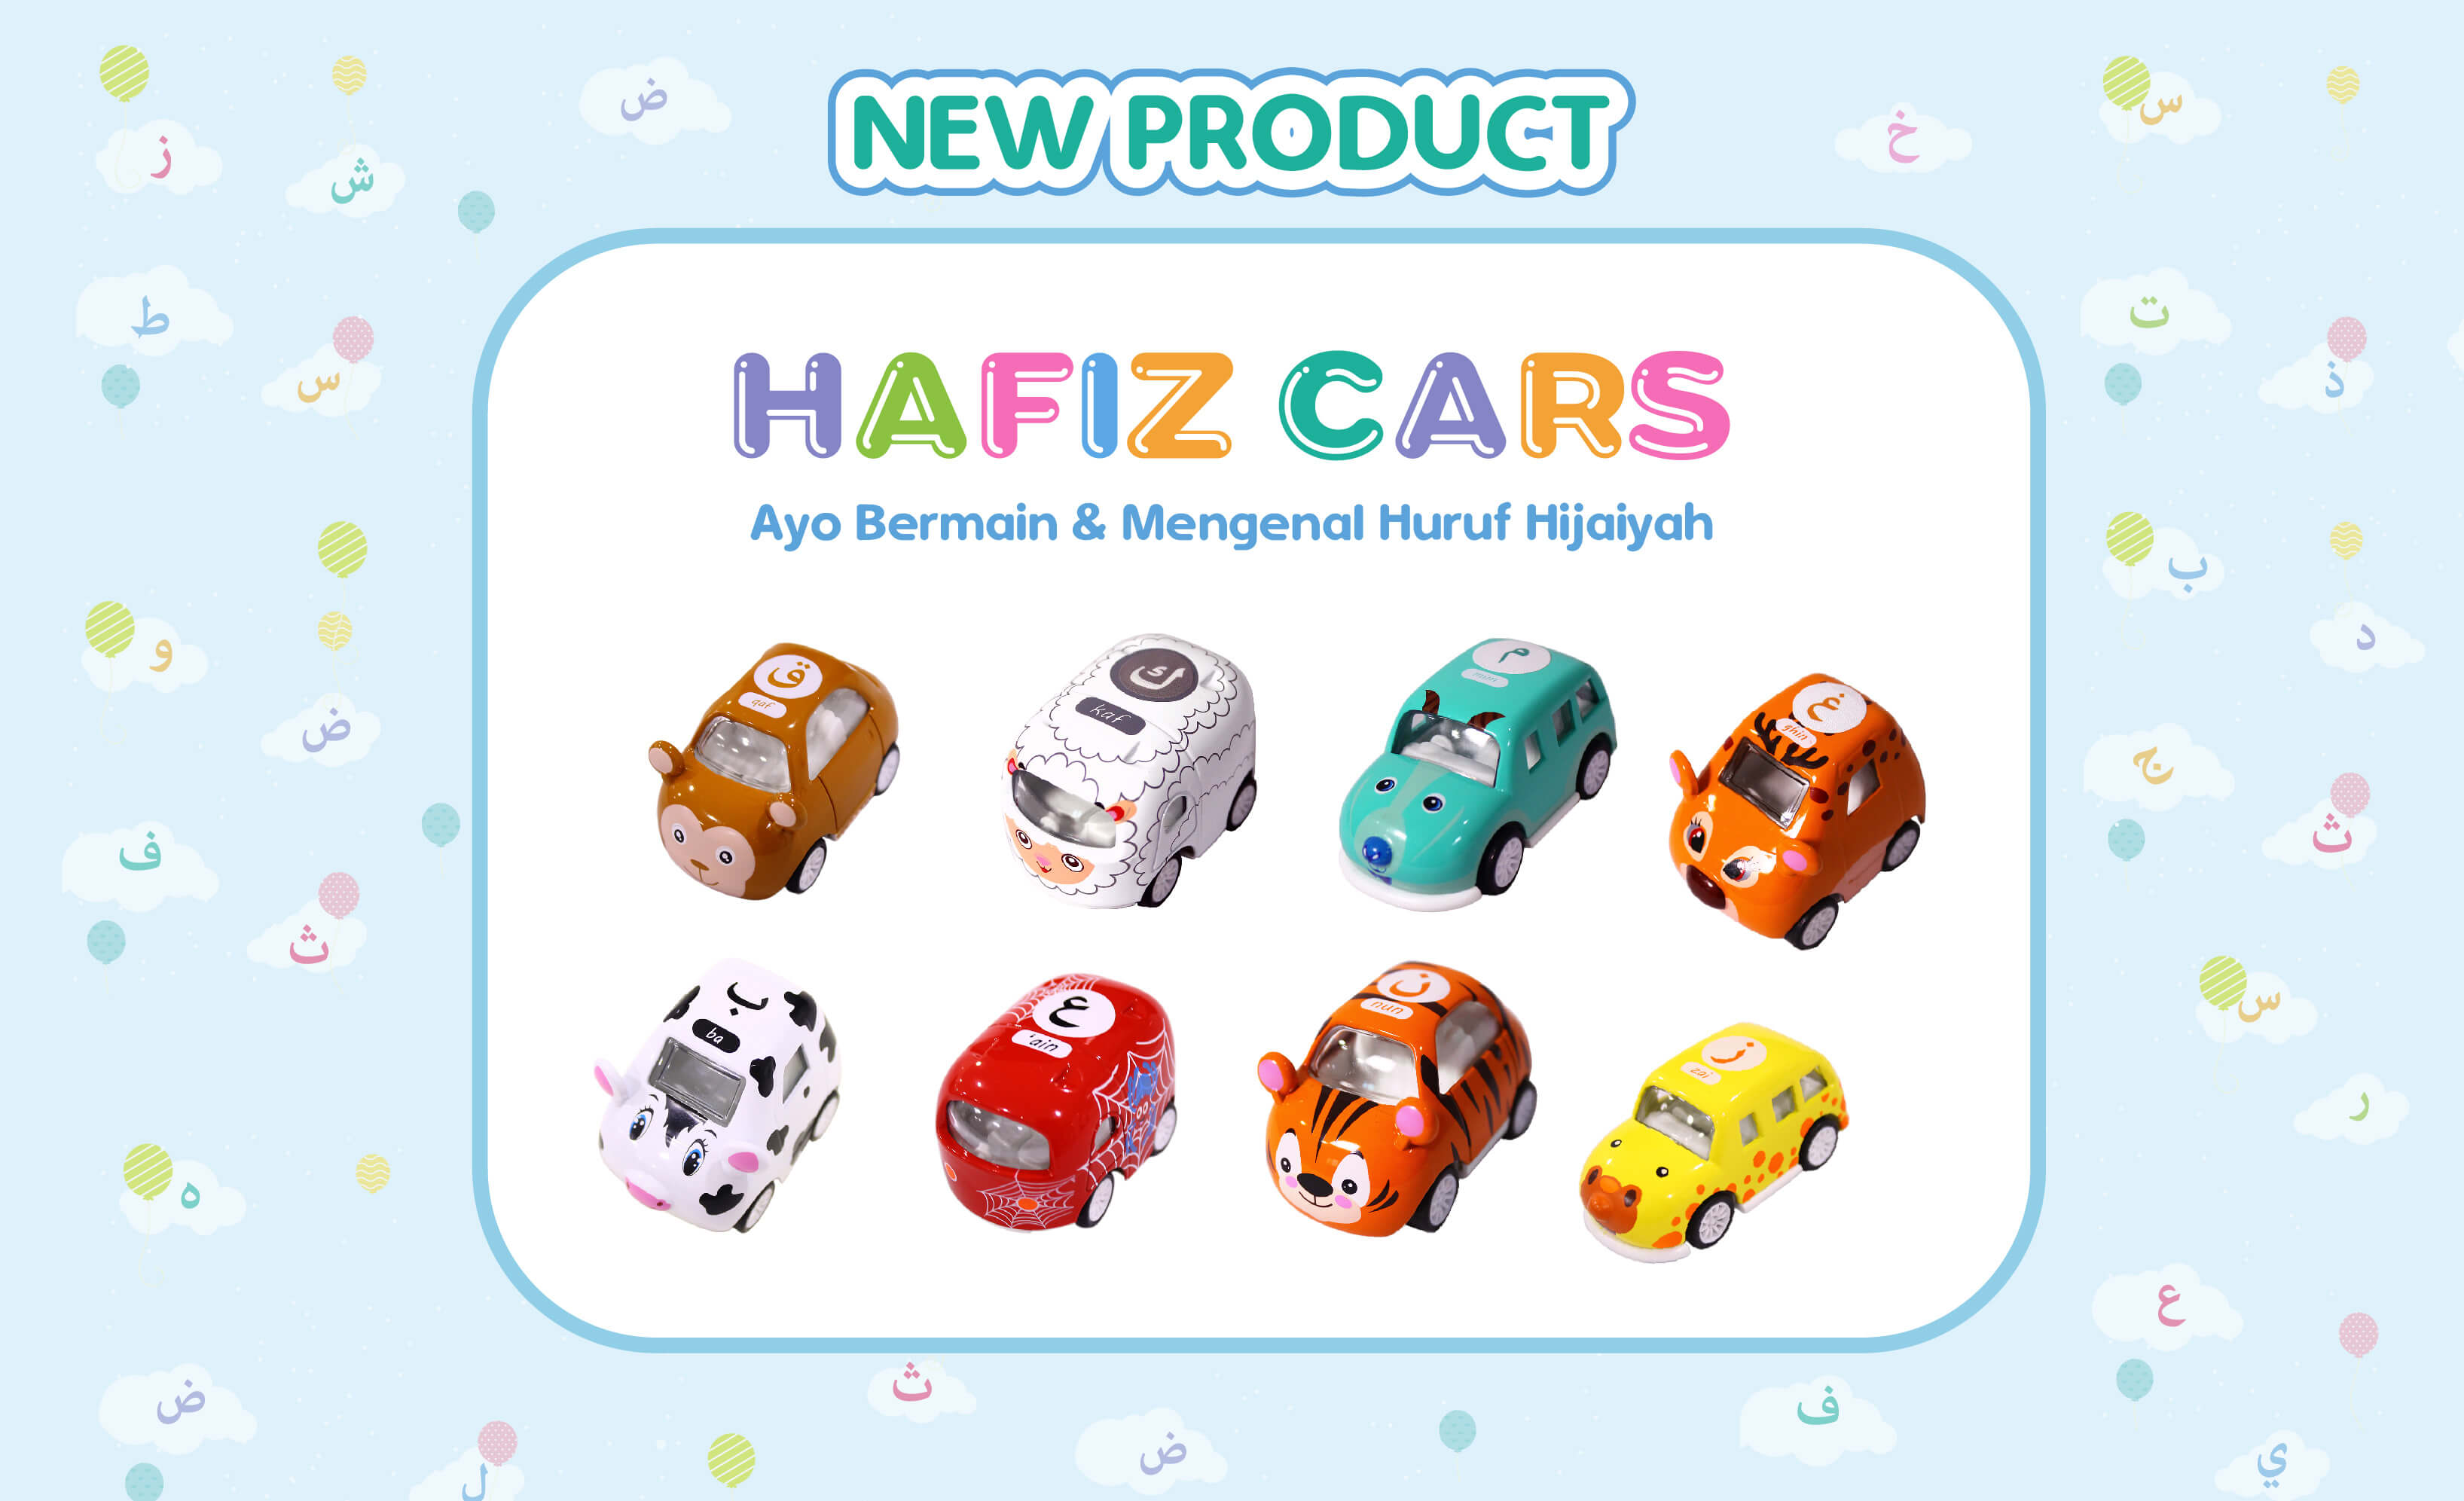 Marketing-Hafiz-Cars2-15.jpg